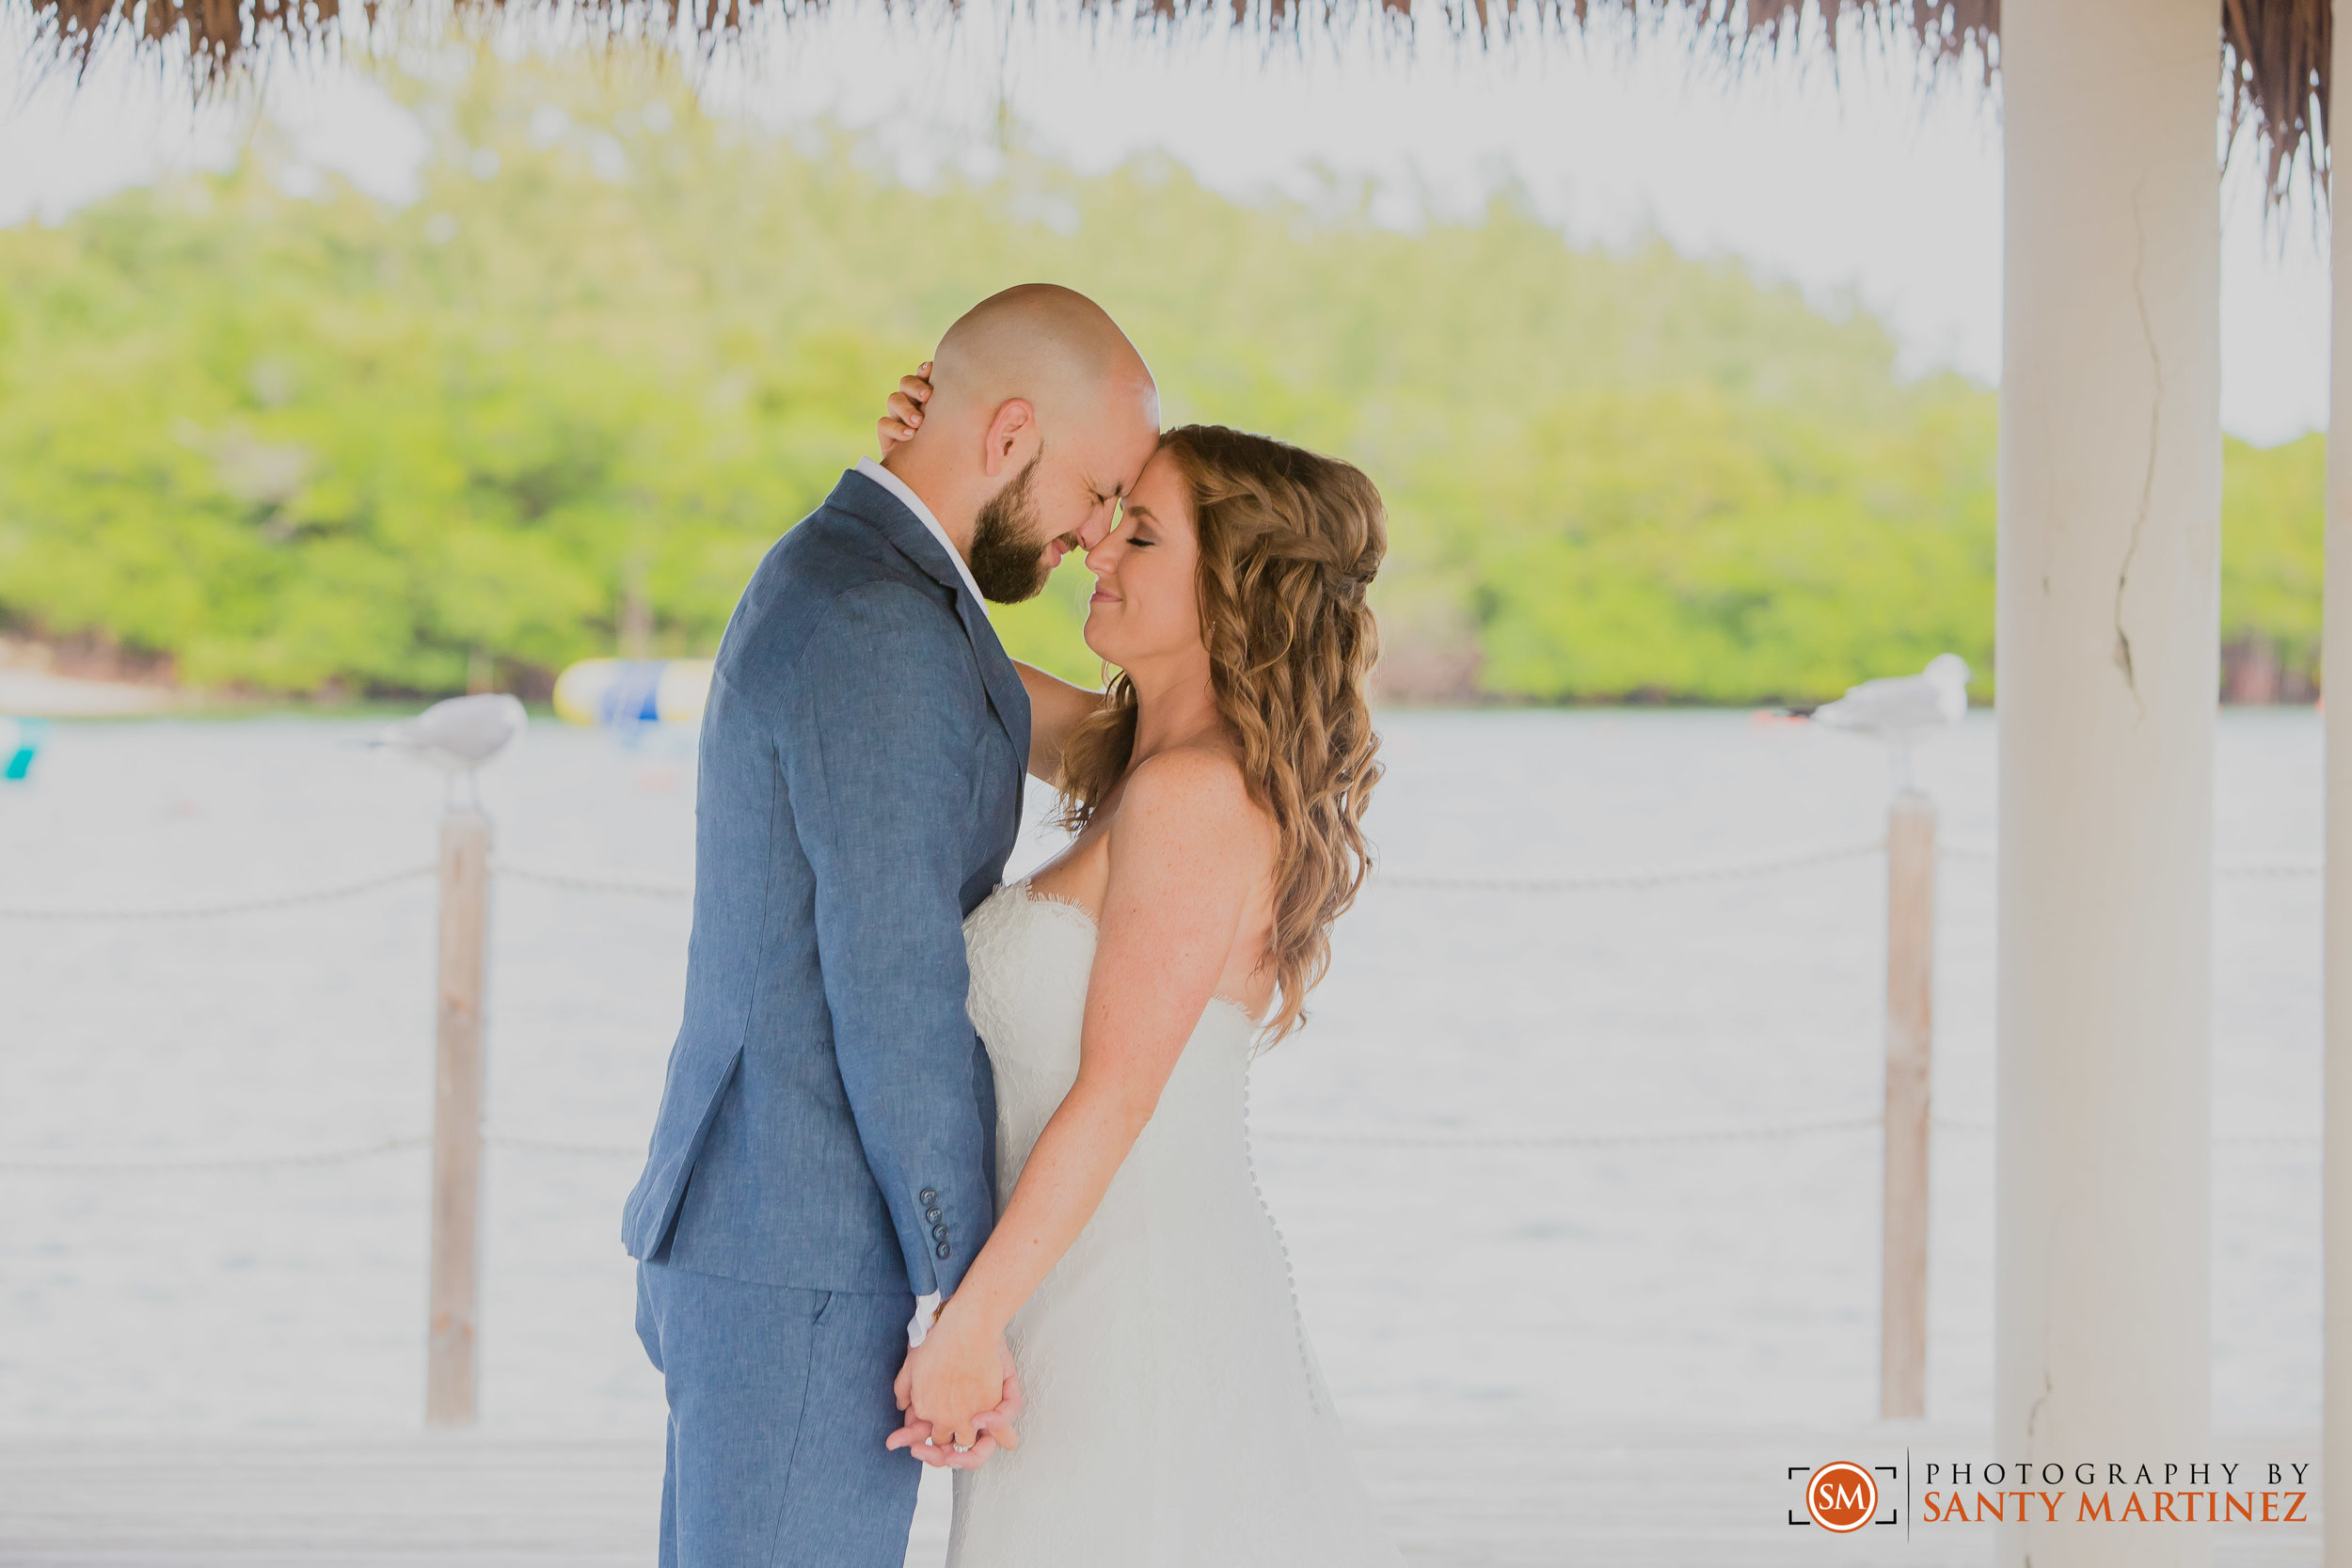 Postcard Inn Islamorada Wedding - Photography by Santy Martinez-0440.jpg